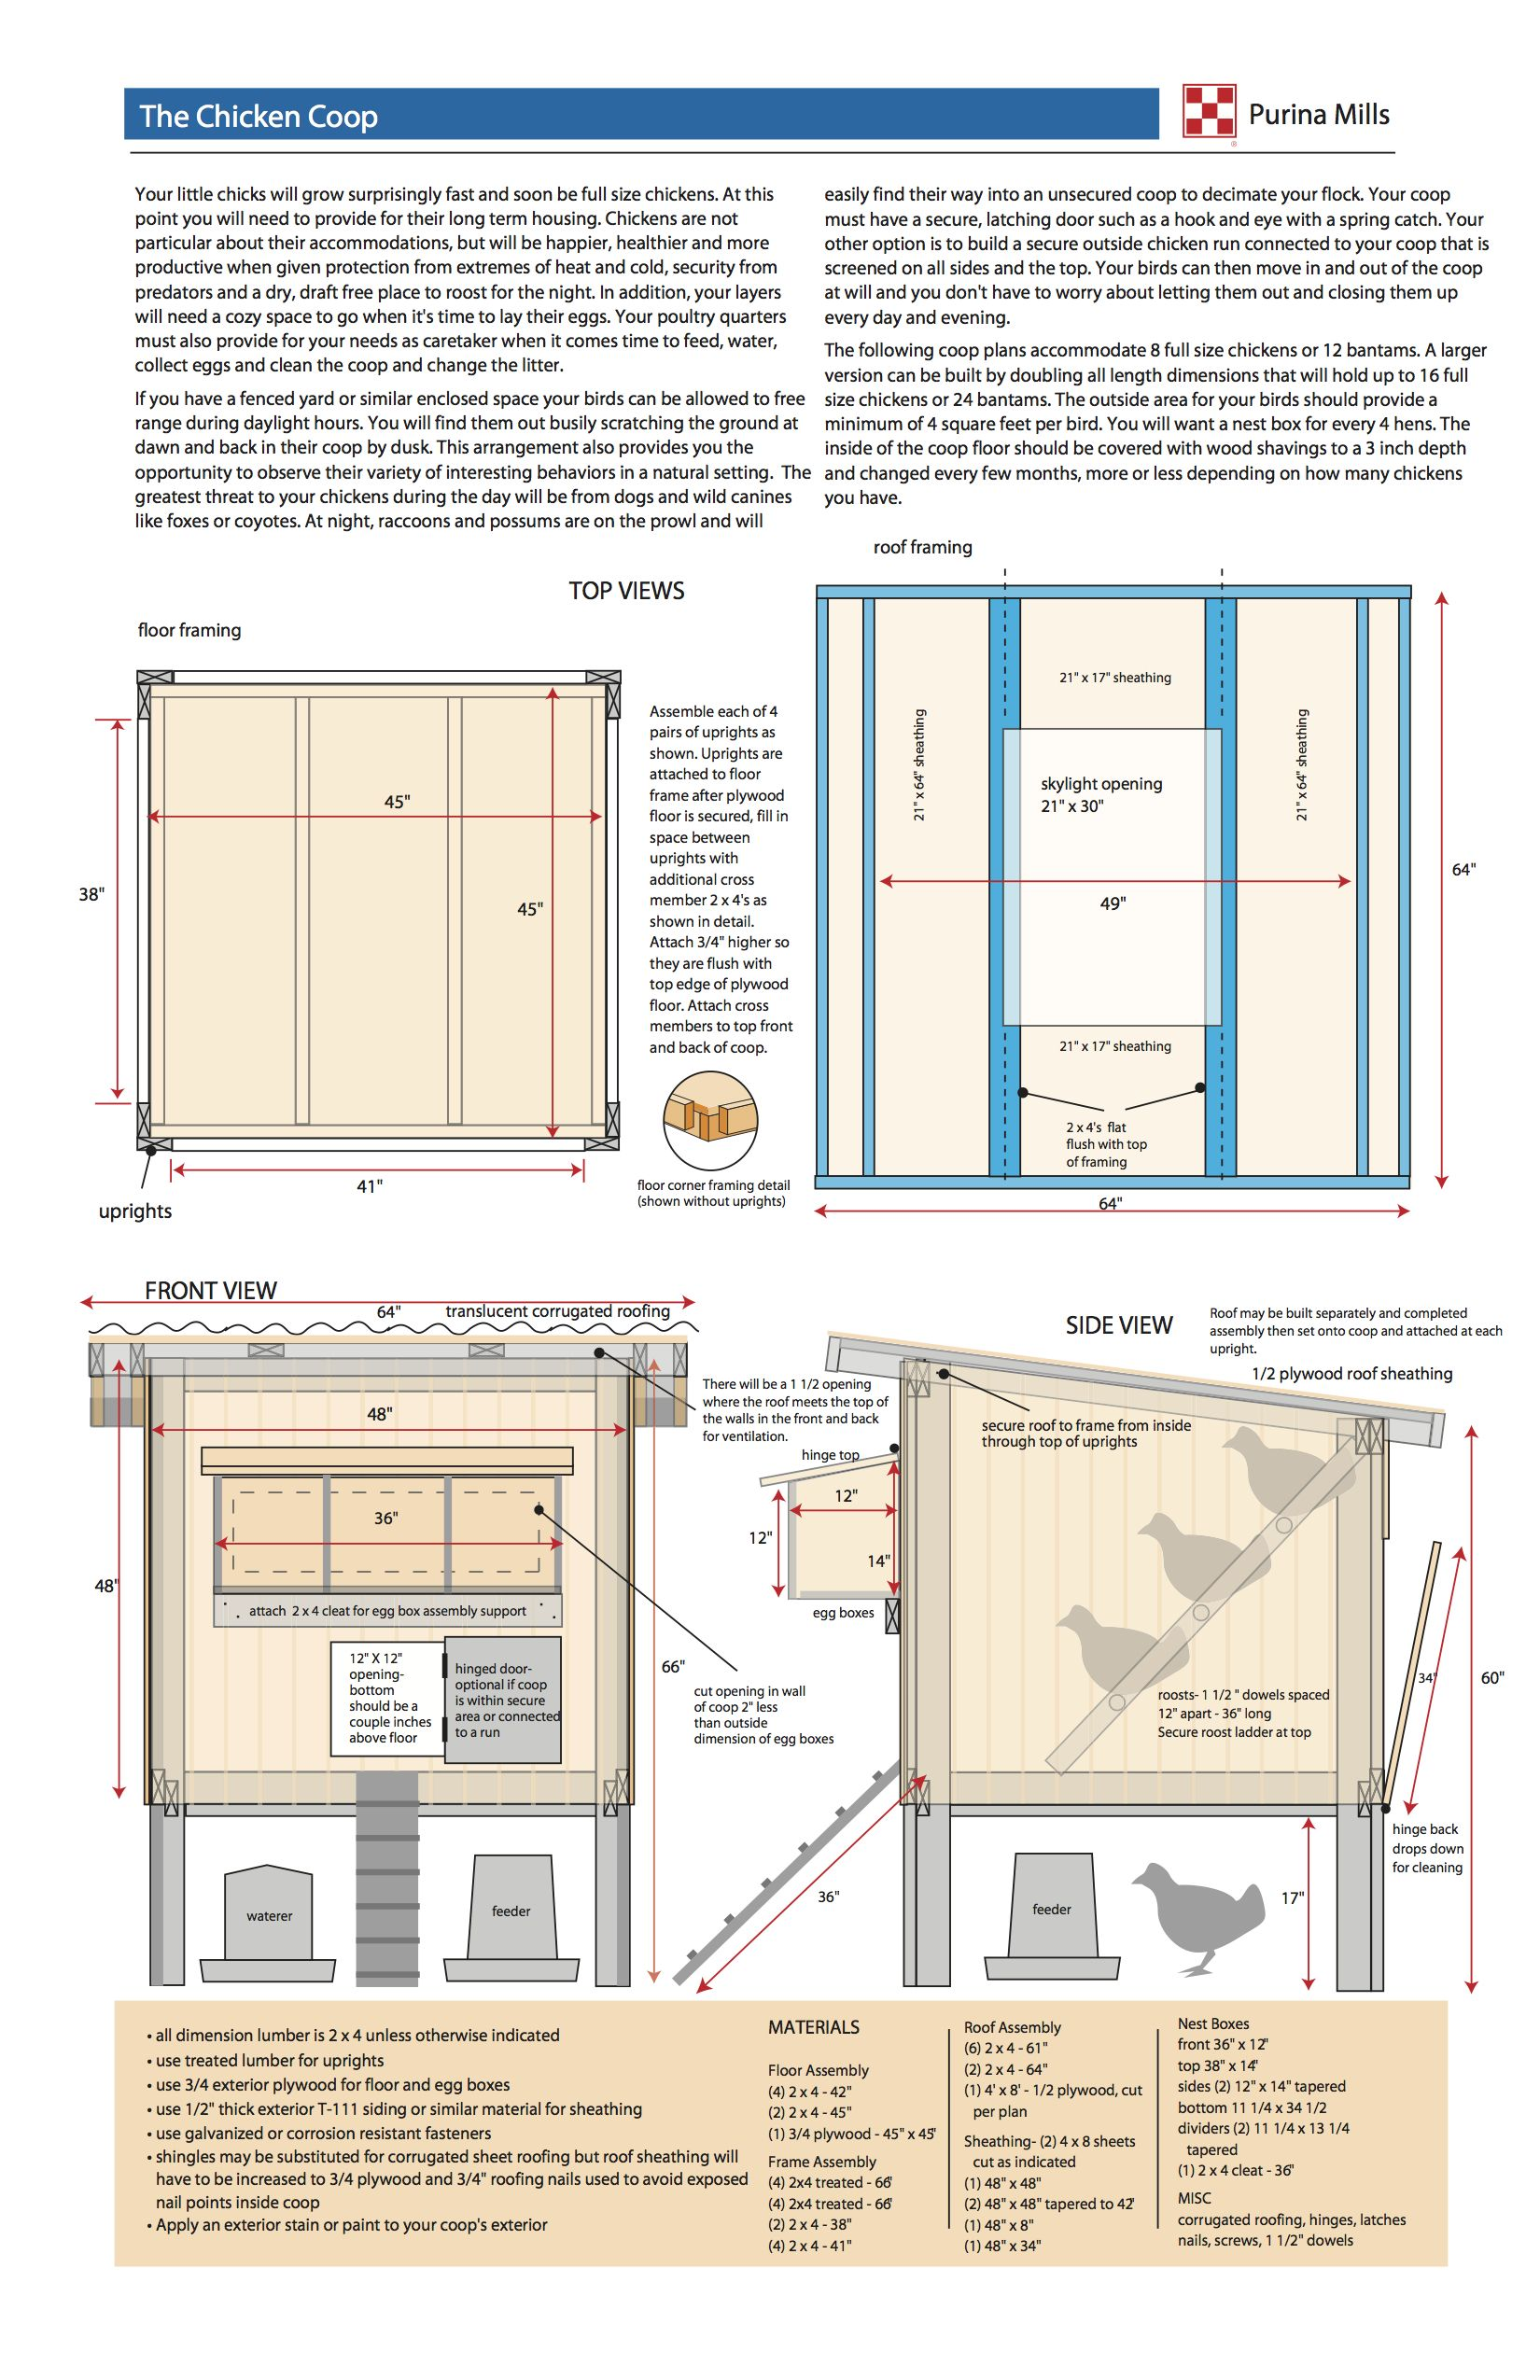 purina hen house design plans chicken coops feed care